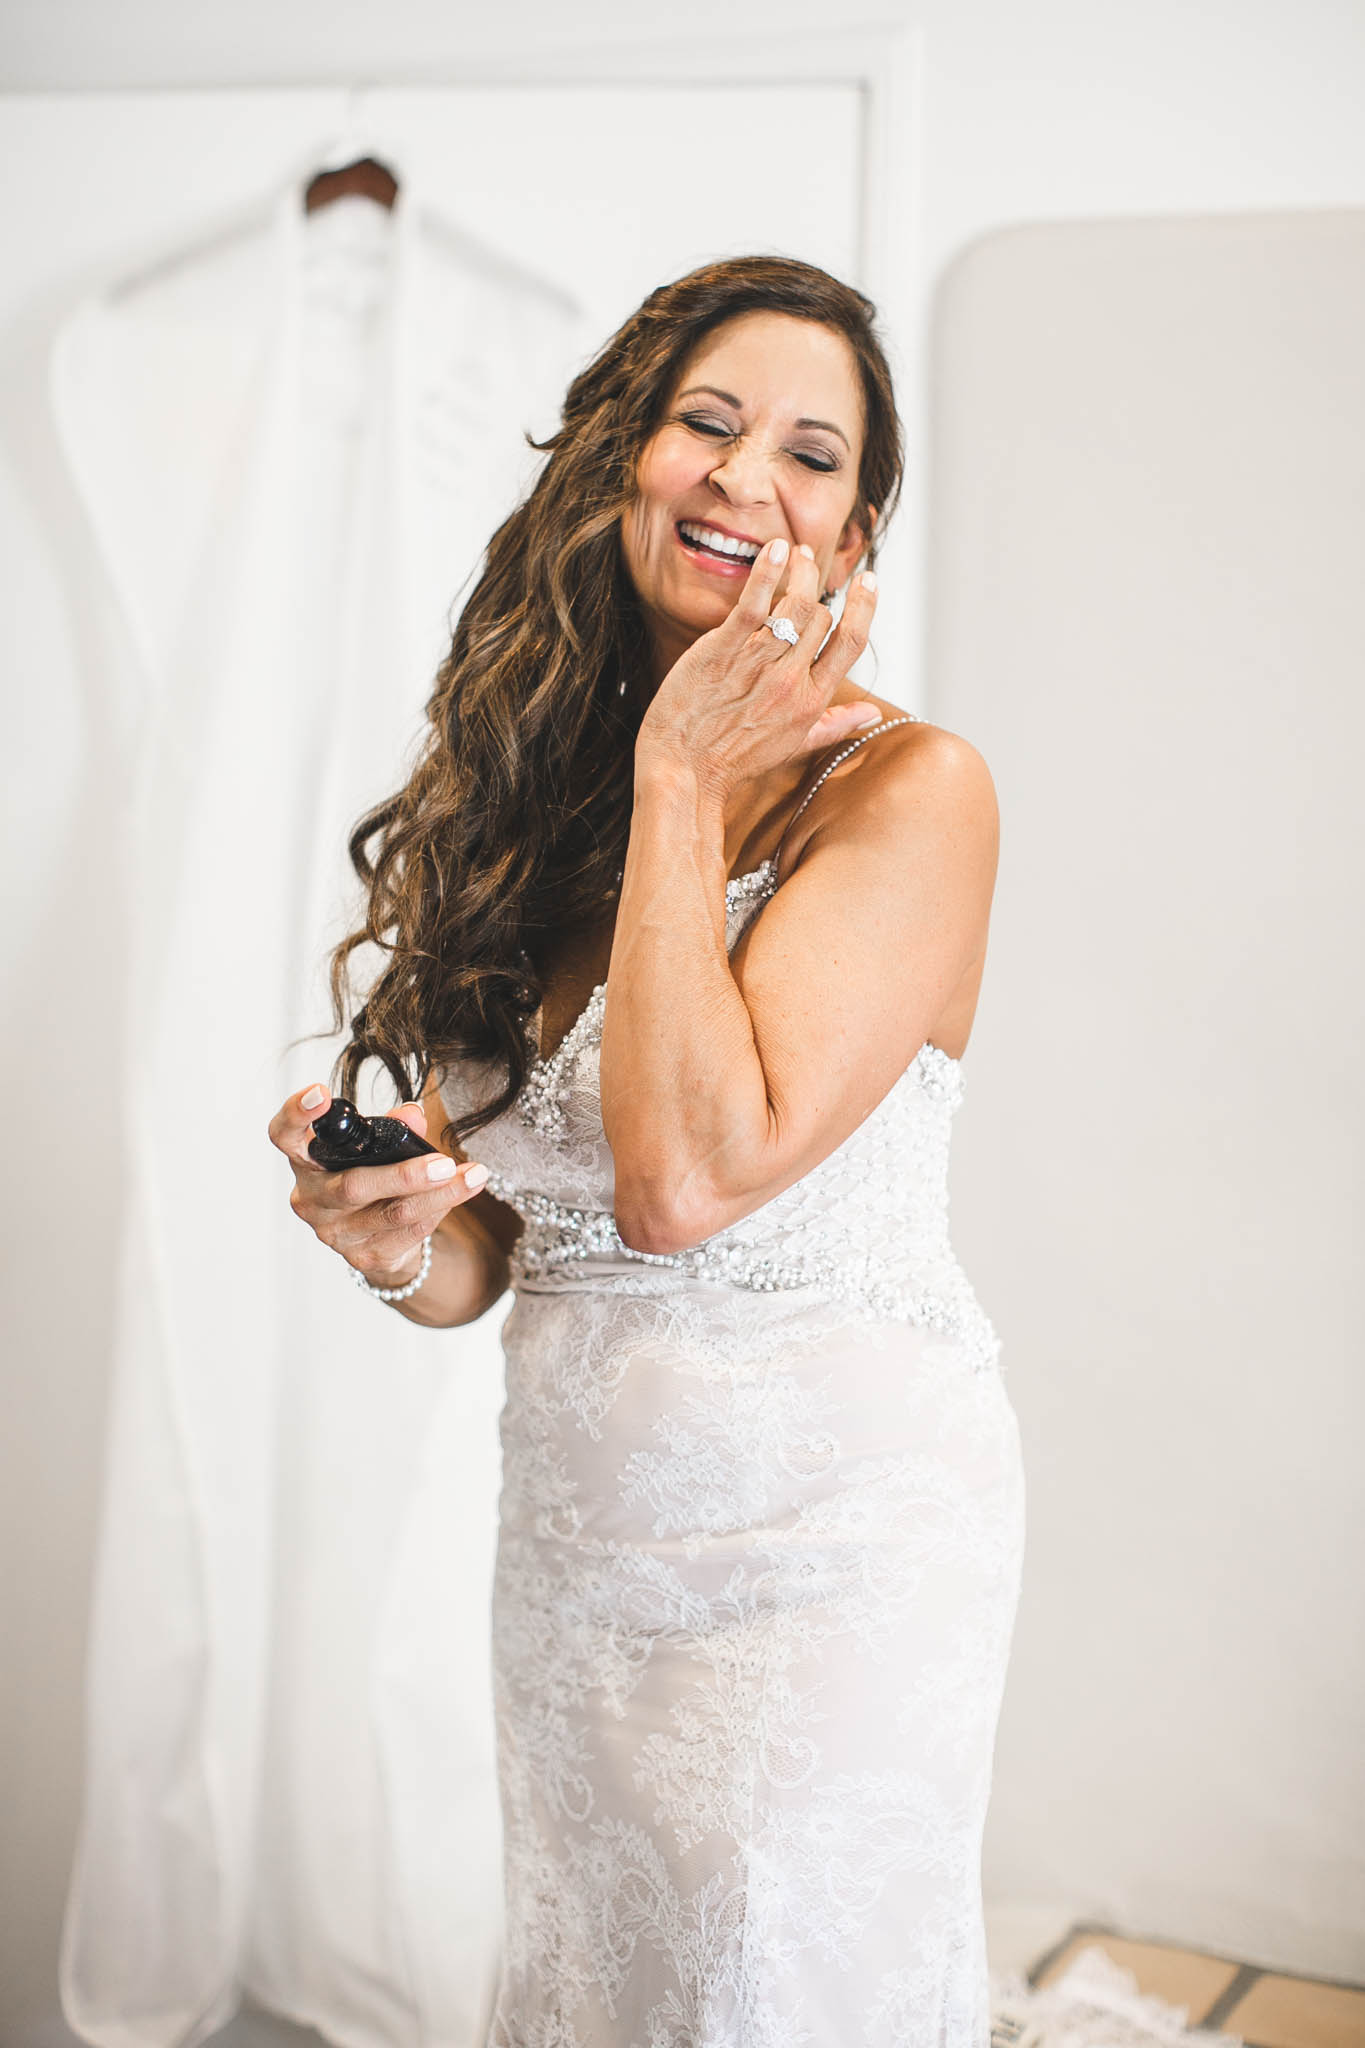 In all her excitement to get married, she accidentally sprayed perfume in her mouth